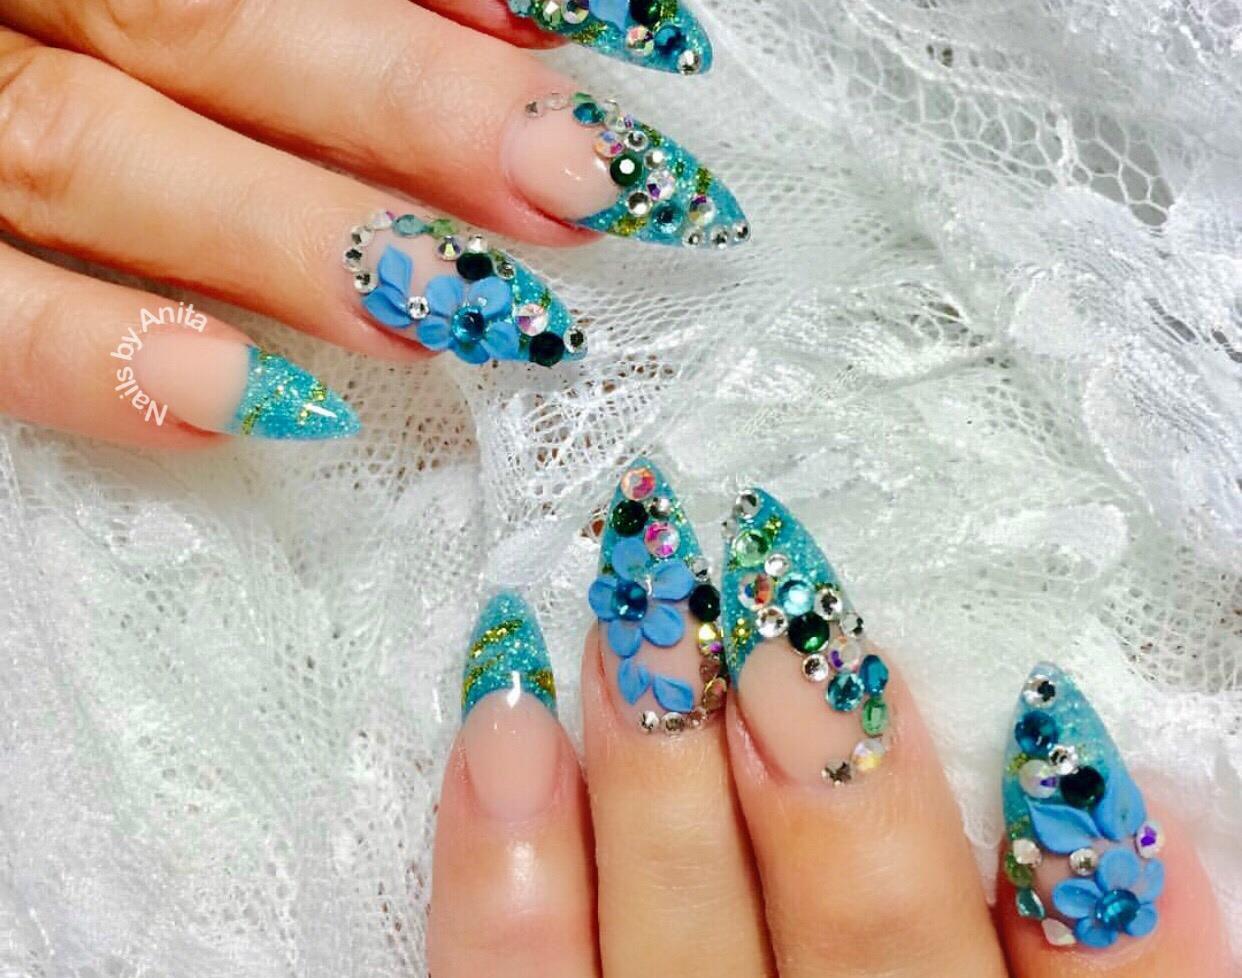 Acrylic Full Set Designs $90 Acrylic Nails With Designs | Nail Art ...